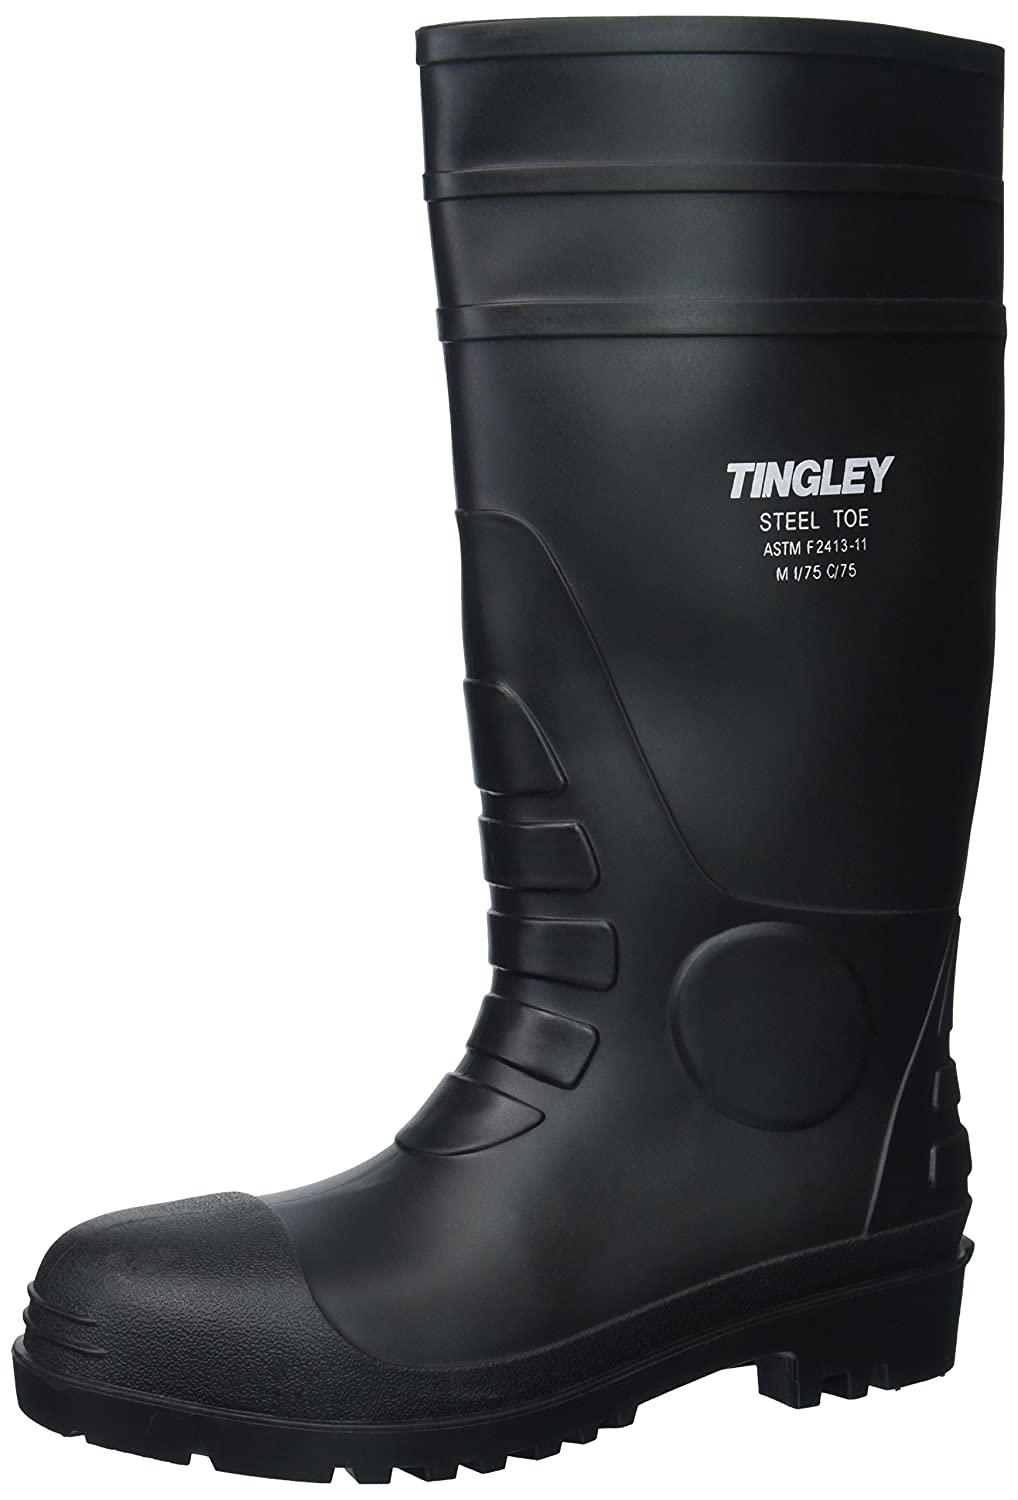 Tingley 31251.10 Pilot 15-in Cleated Steel Toe Knee Boot, Size 10, Black